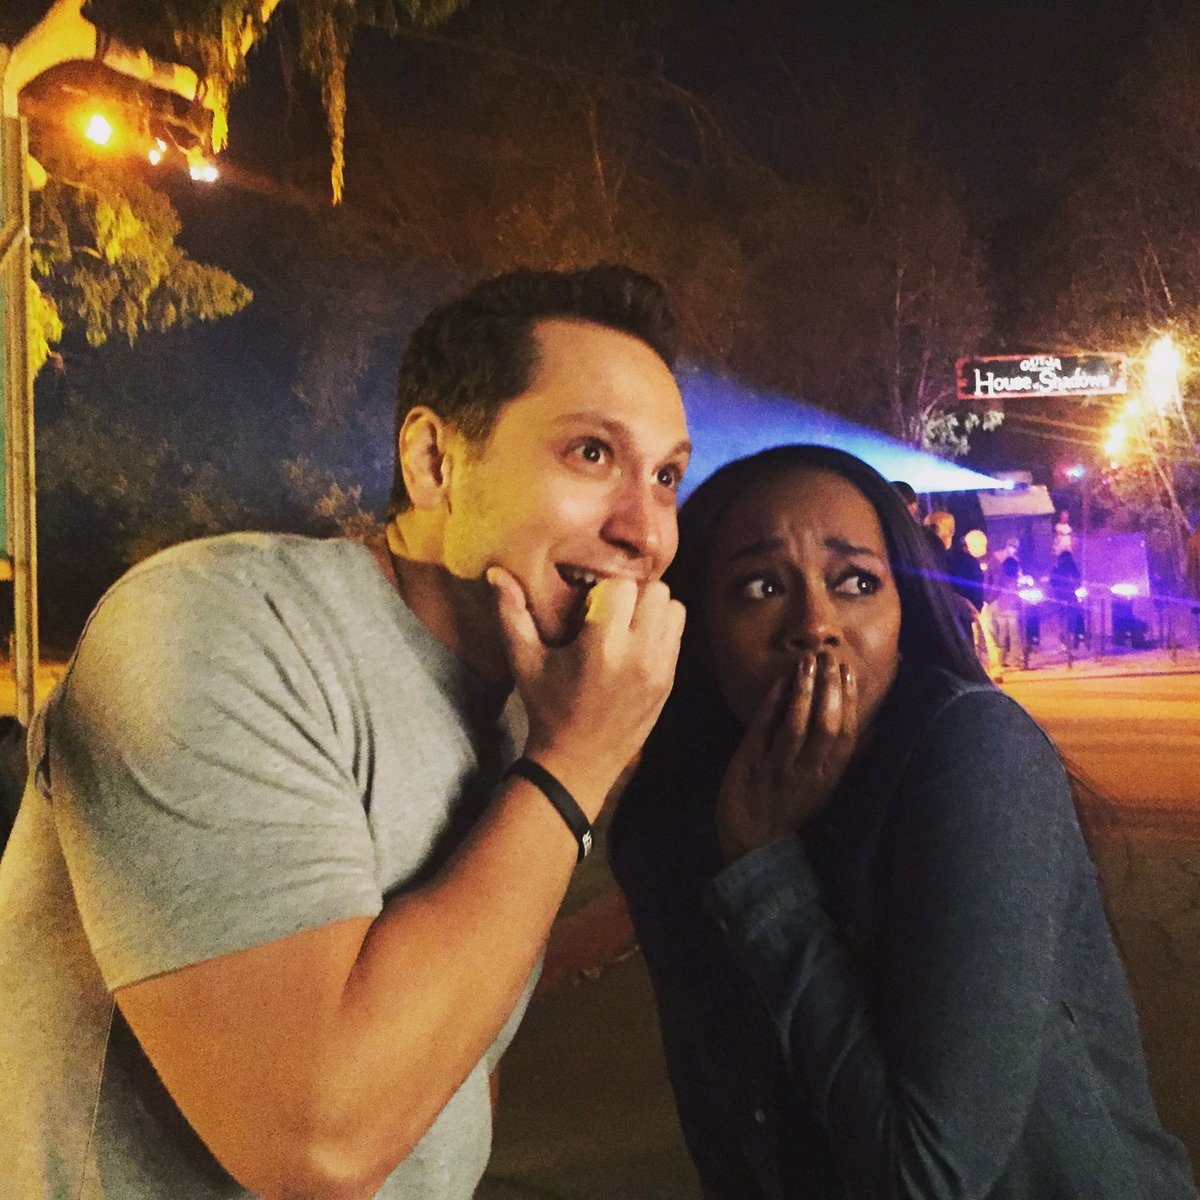 I'm going to miss them so much #htgawm